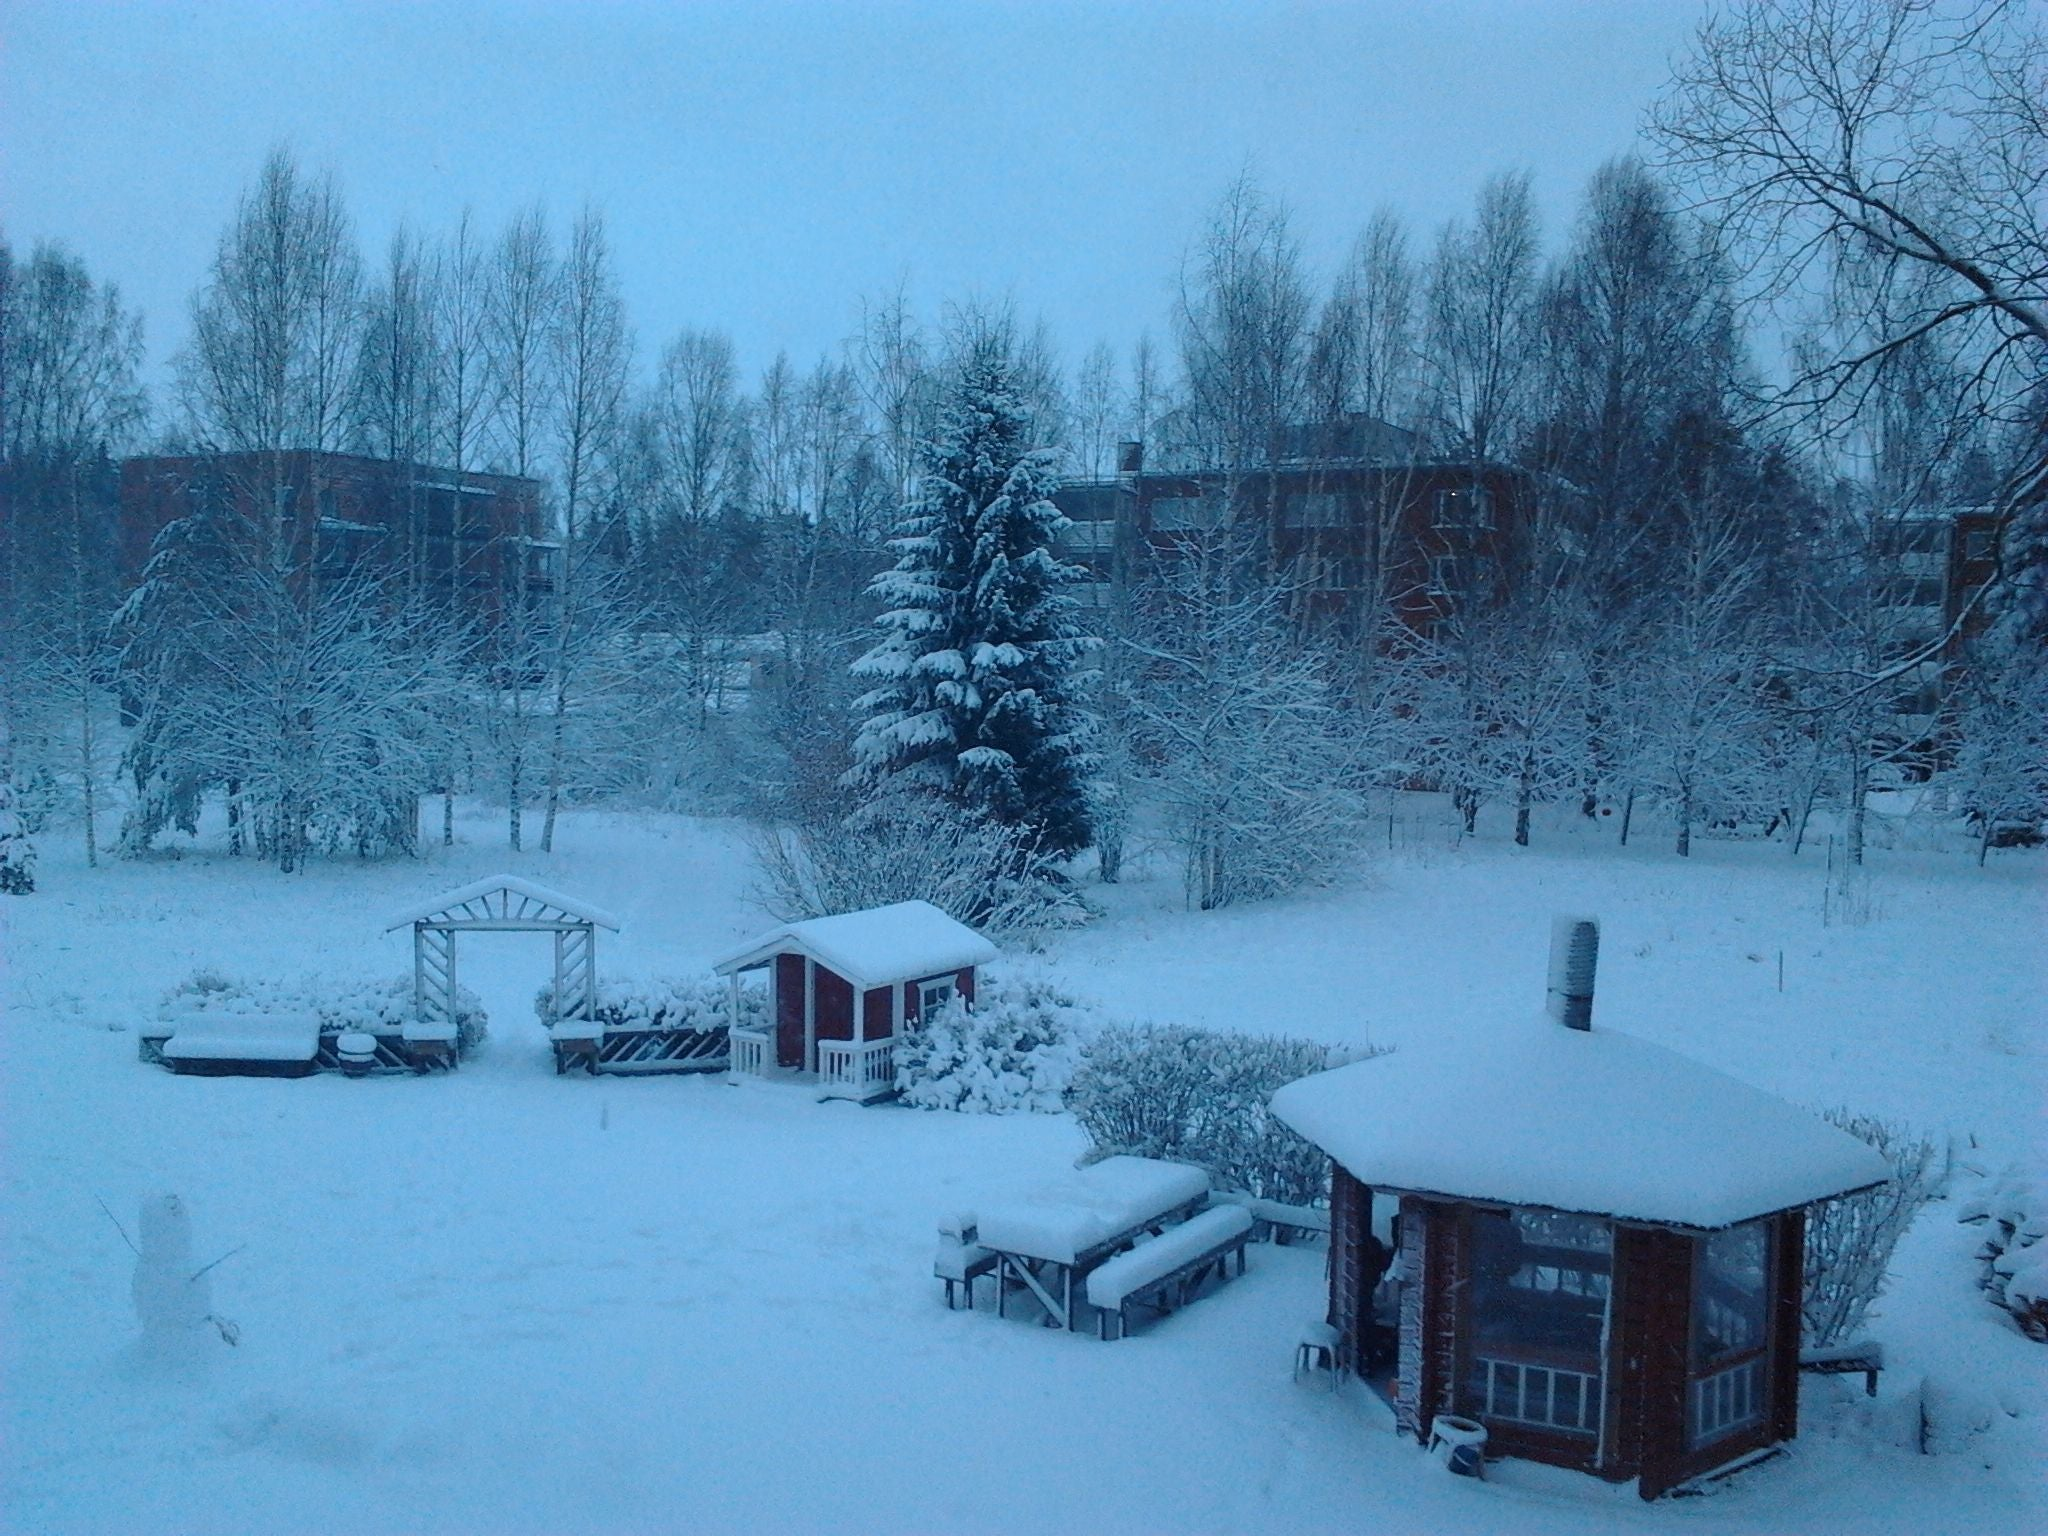 Winter in Seinäjoki